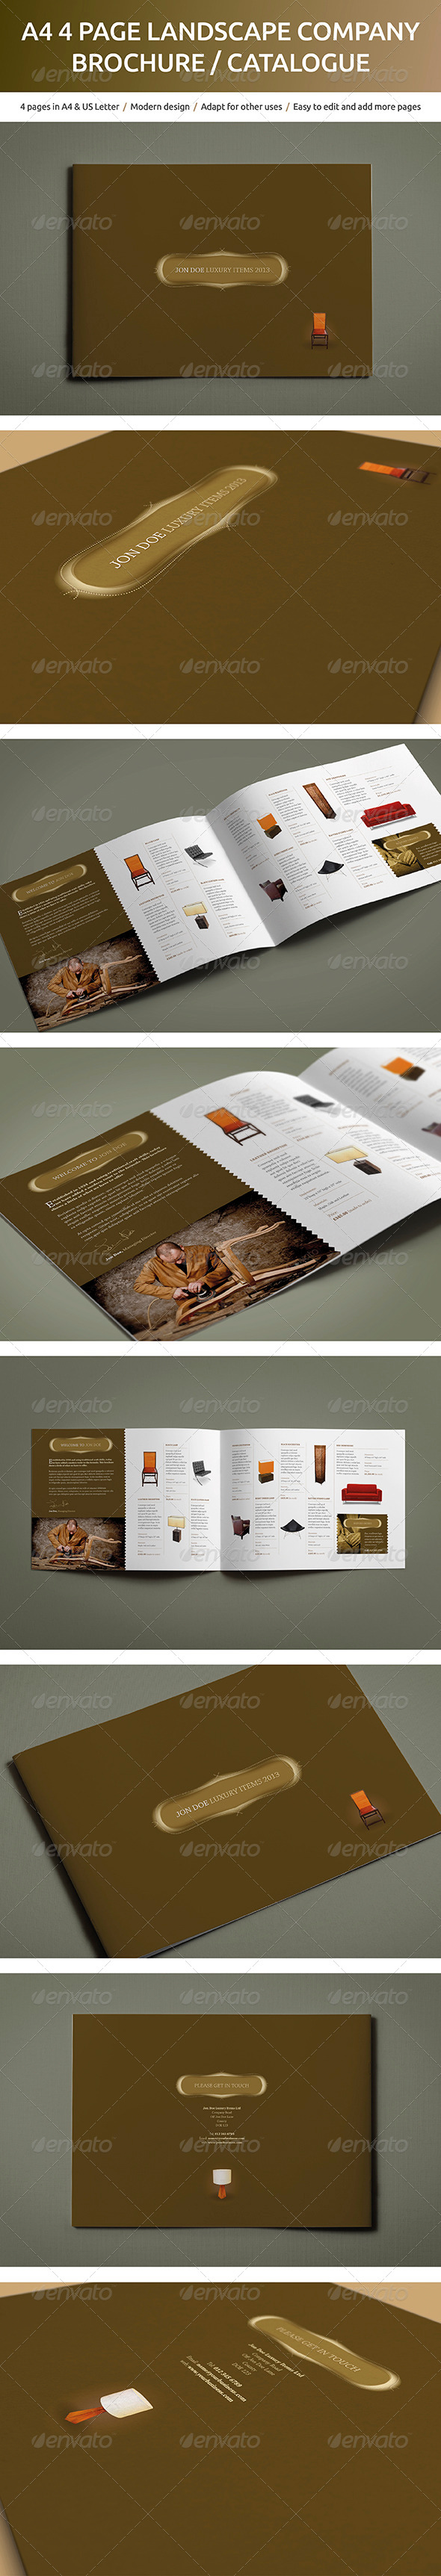 GraphicRiver A4 4 page Landscape Company Brochure and Catalog 5175598